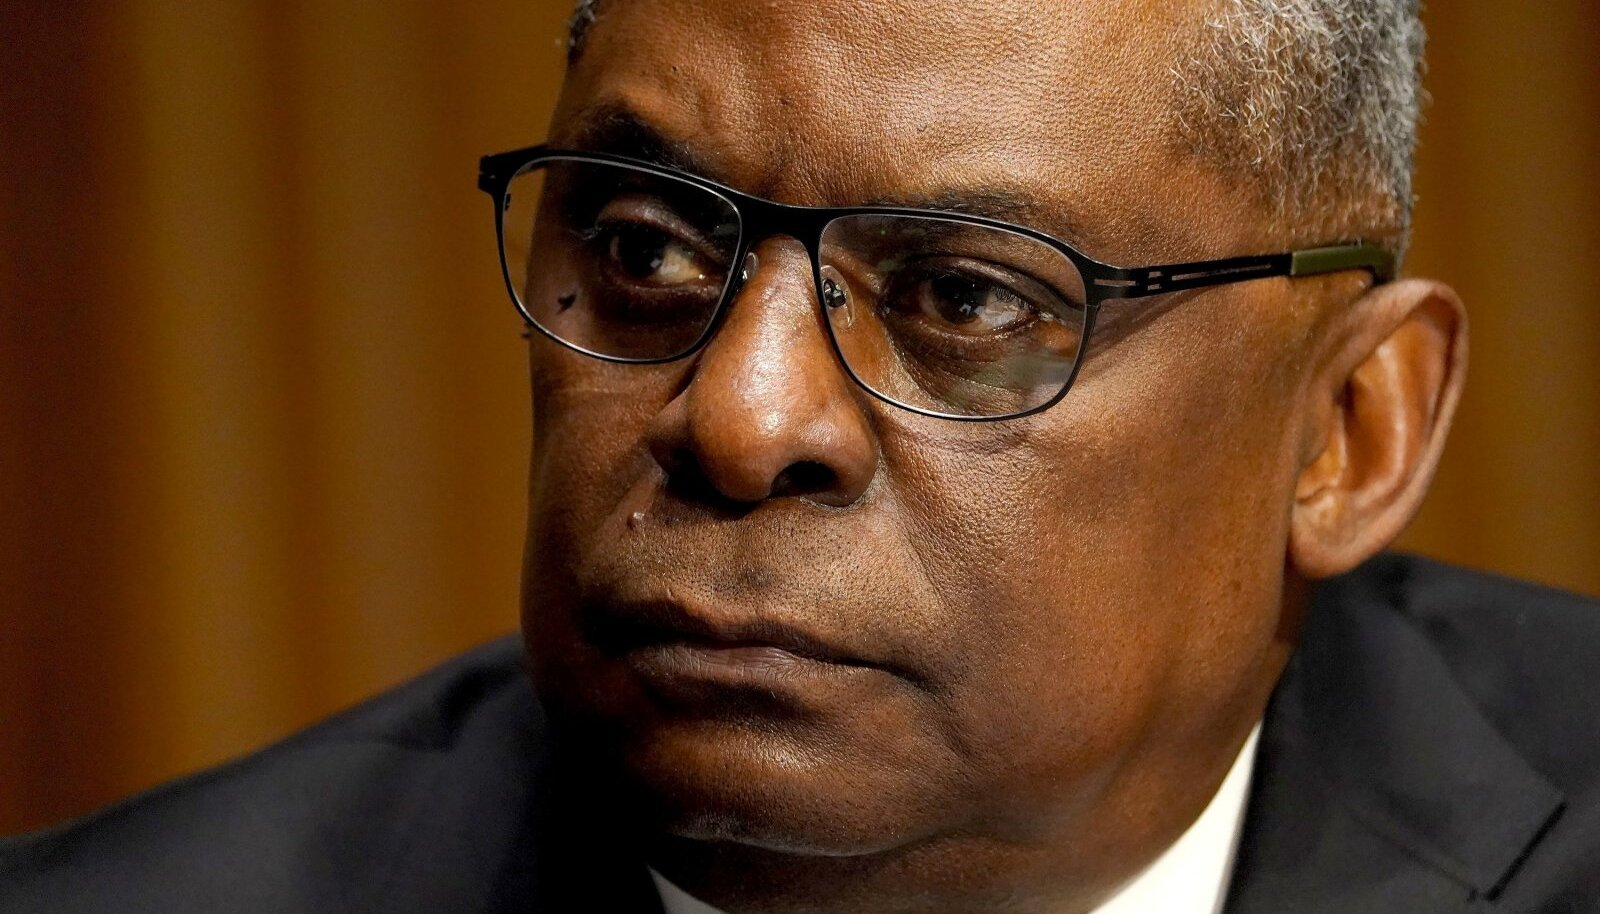 FILE PHOTO: Senate Armed Services Committee Confirmation Hearing for Retired Army Gen. Lloyd Austin